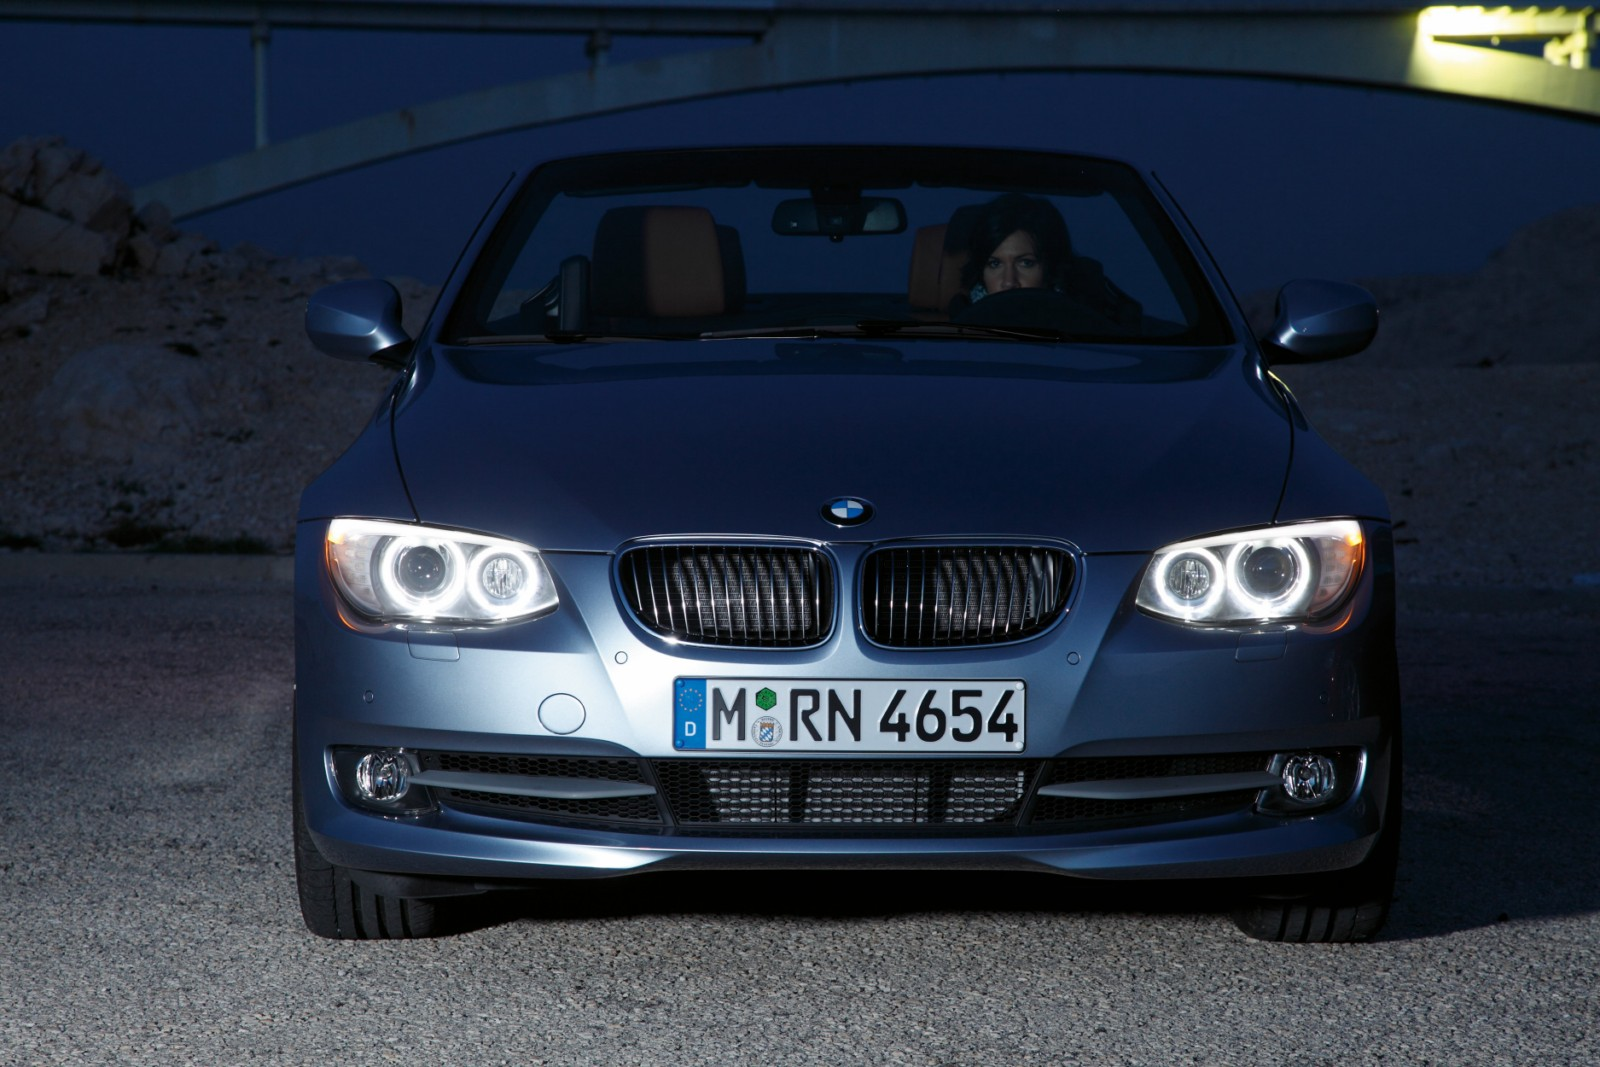 2011 Bmw 3 Series Coupe And Convertible Facelift Photos And Information